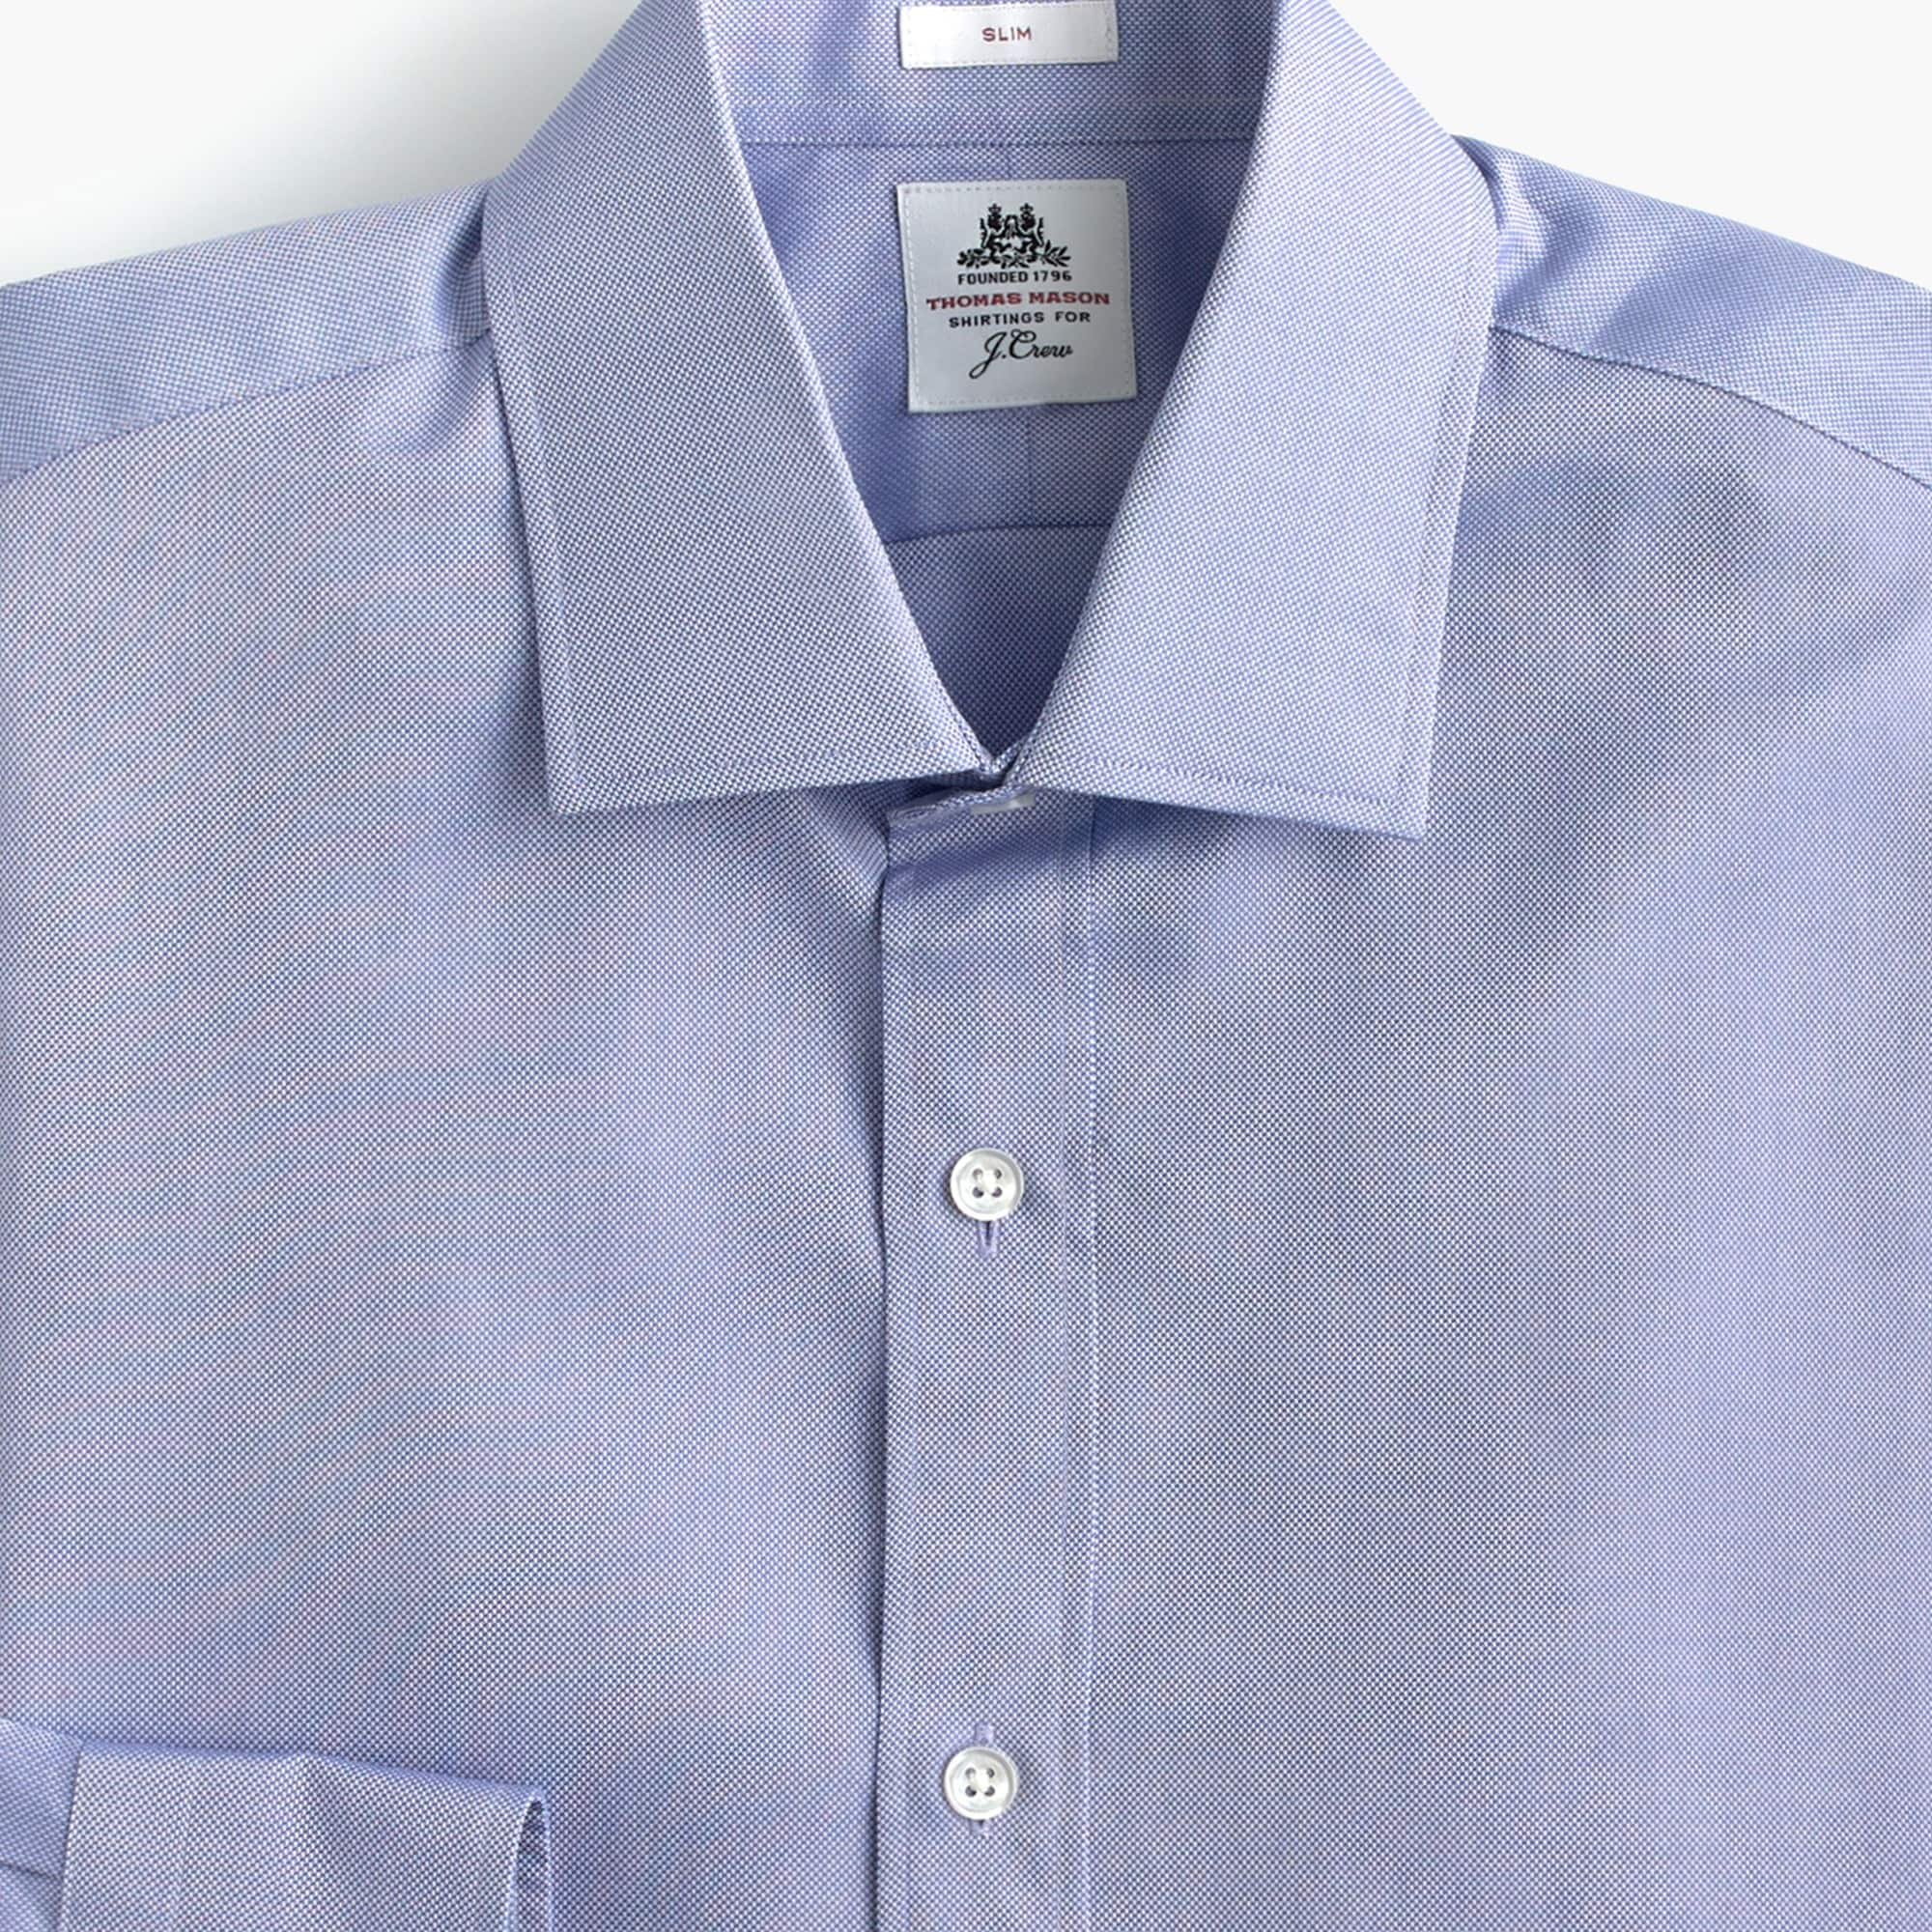 Thomas Mason® for J.Crew two-ply dress shirt in royal oxford cotton